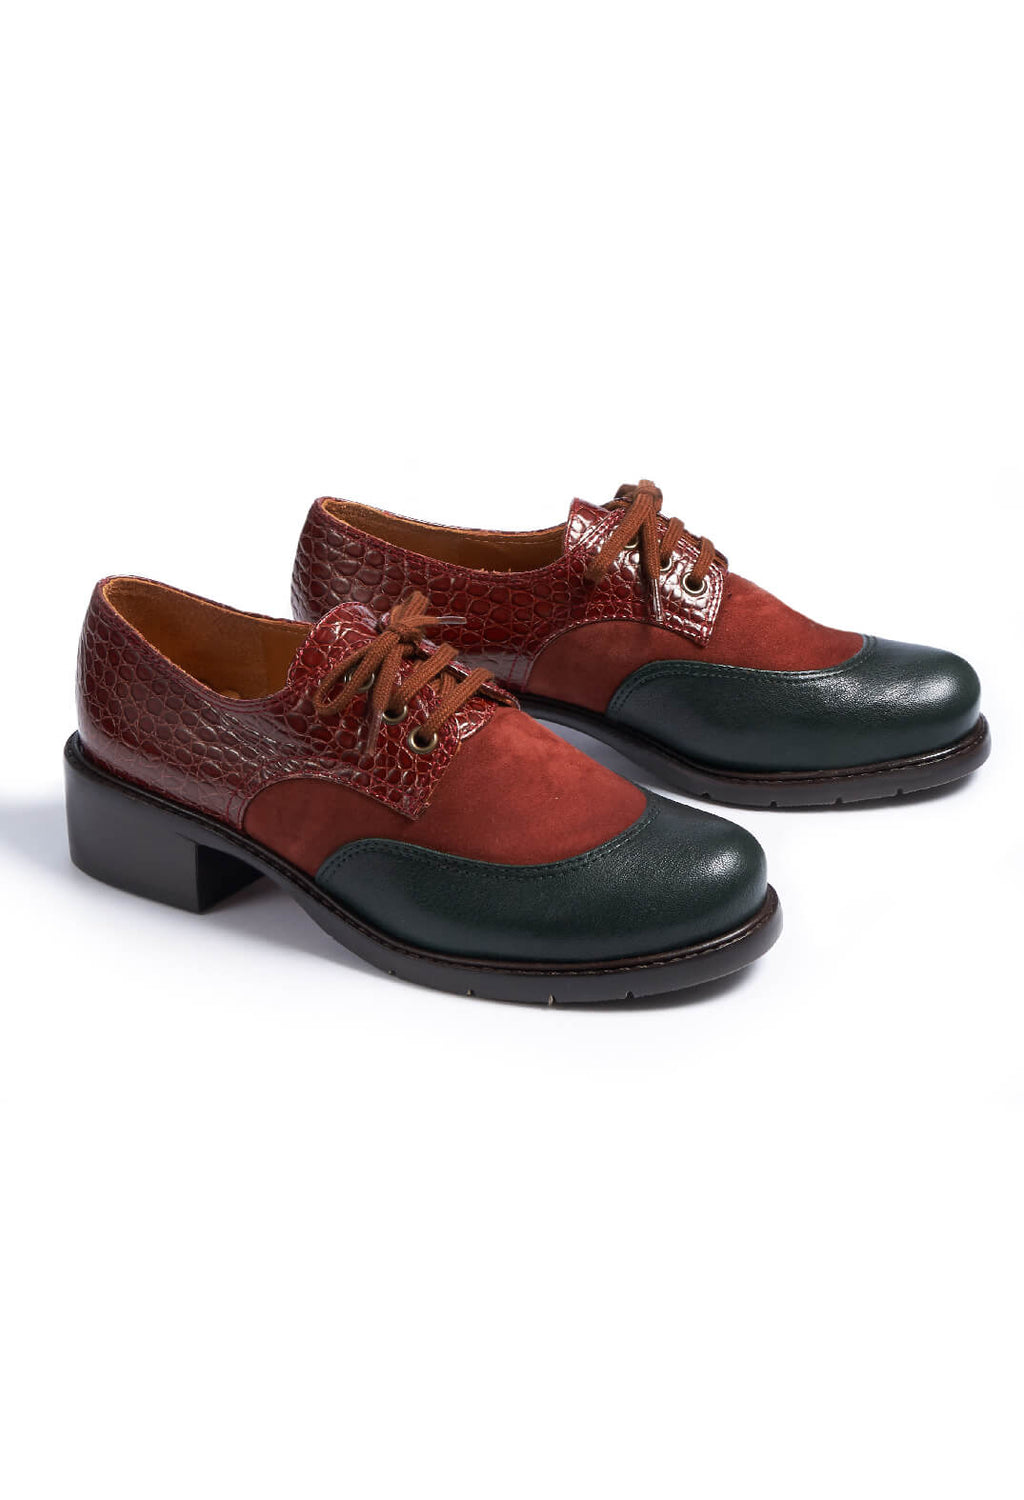 Lace Up Brogues in Barna / Verde / Ante / Terra / Nilo / Brick